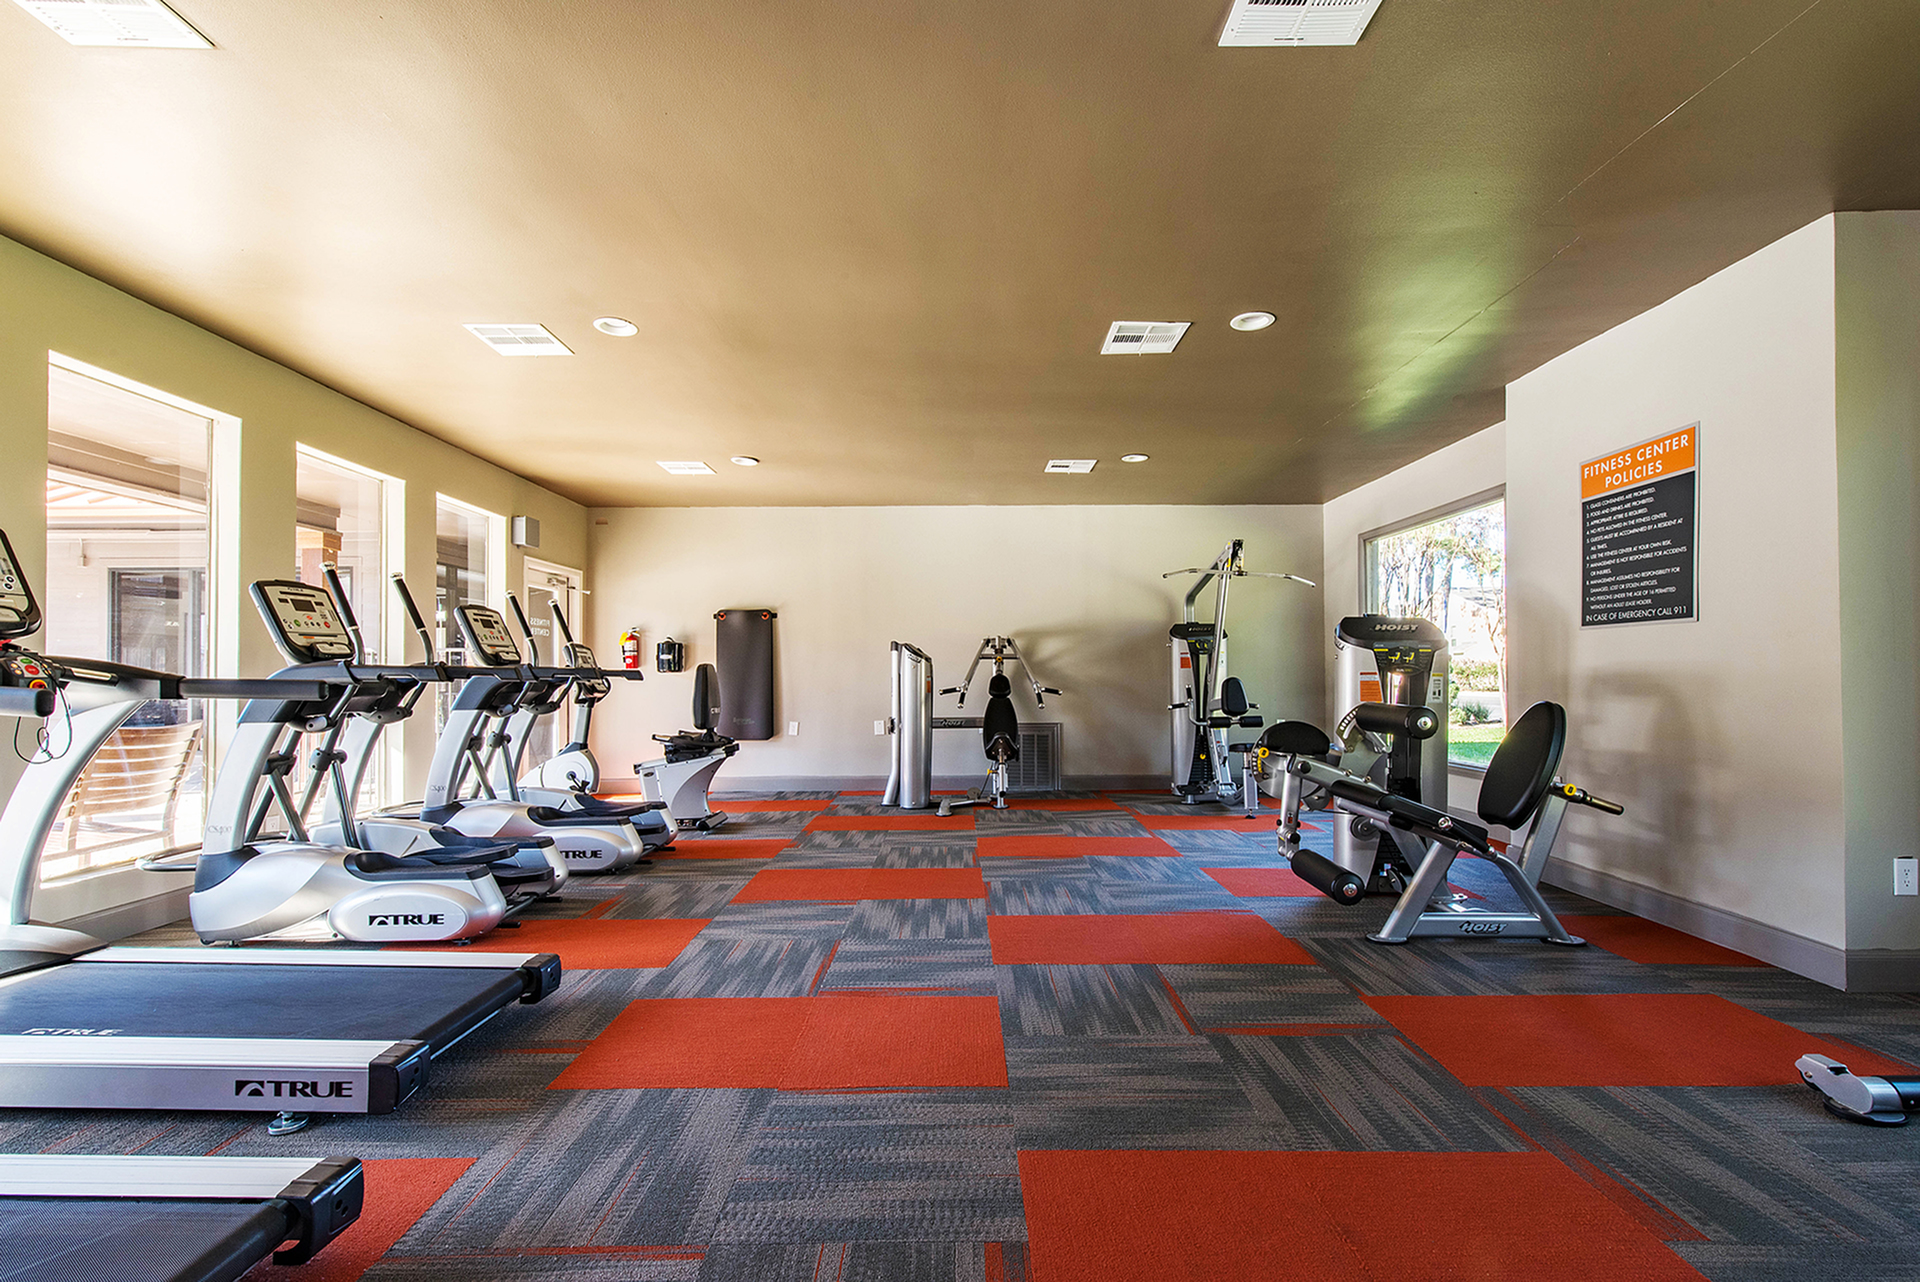 Houston TX Apartments for Rent-Copper Lodge Fitness Center with Free Weights and Cardio Machines